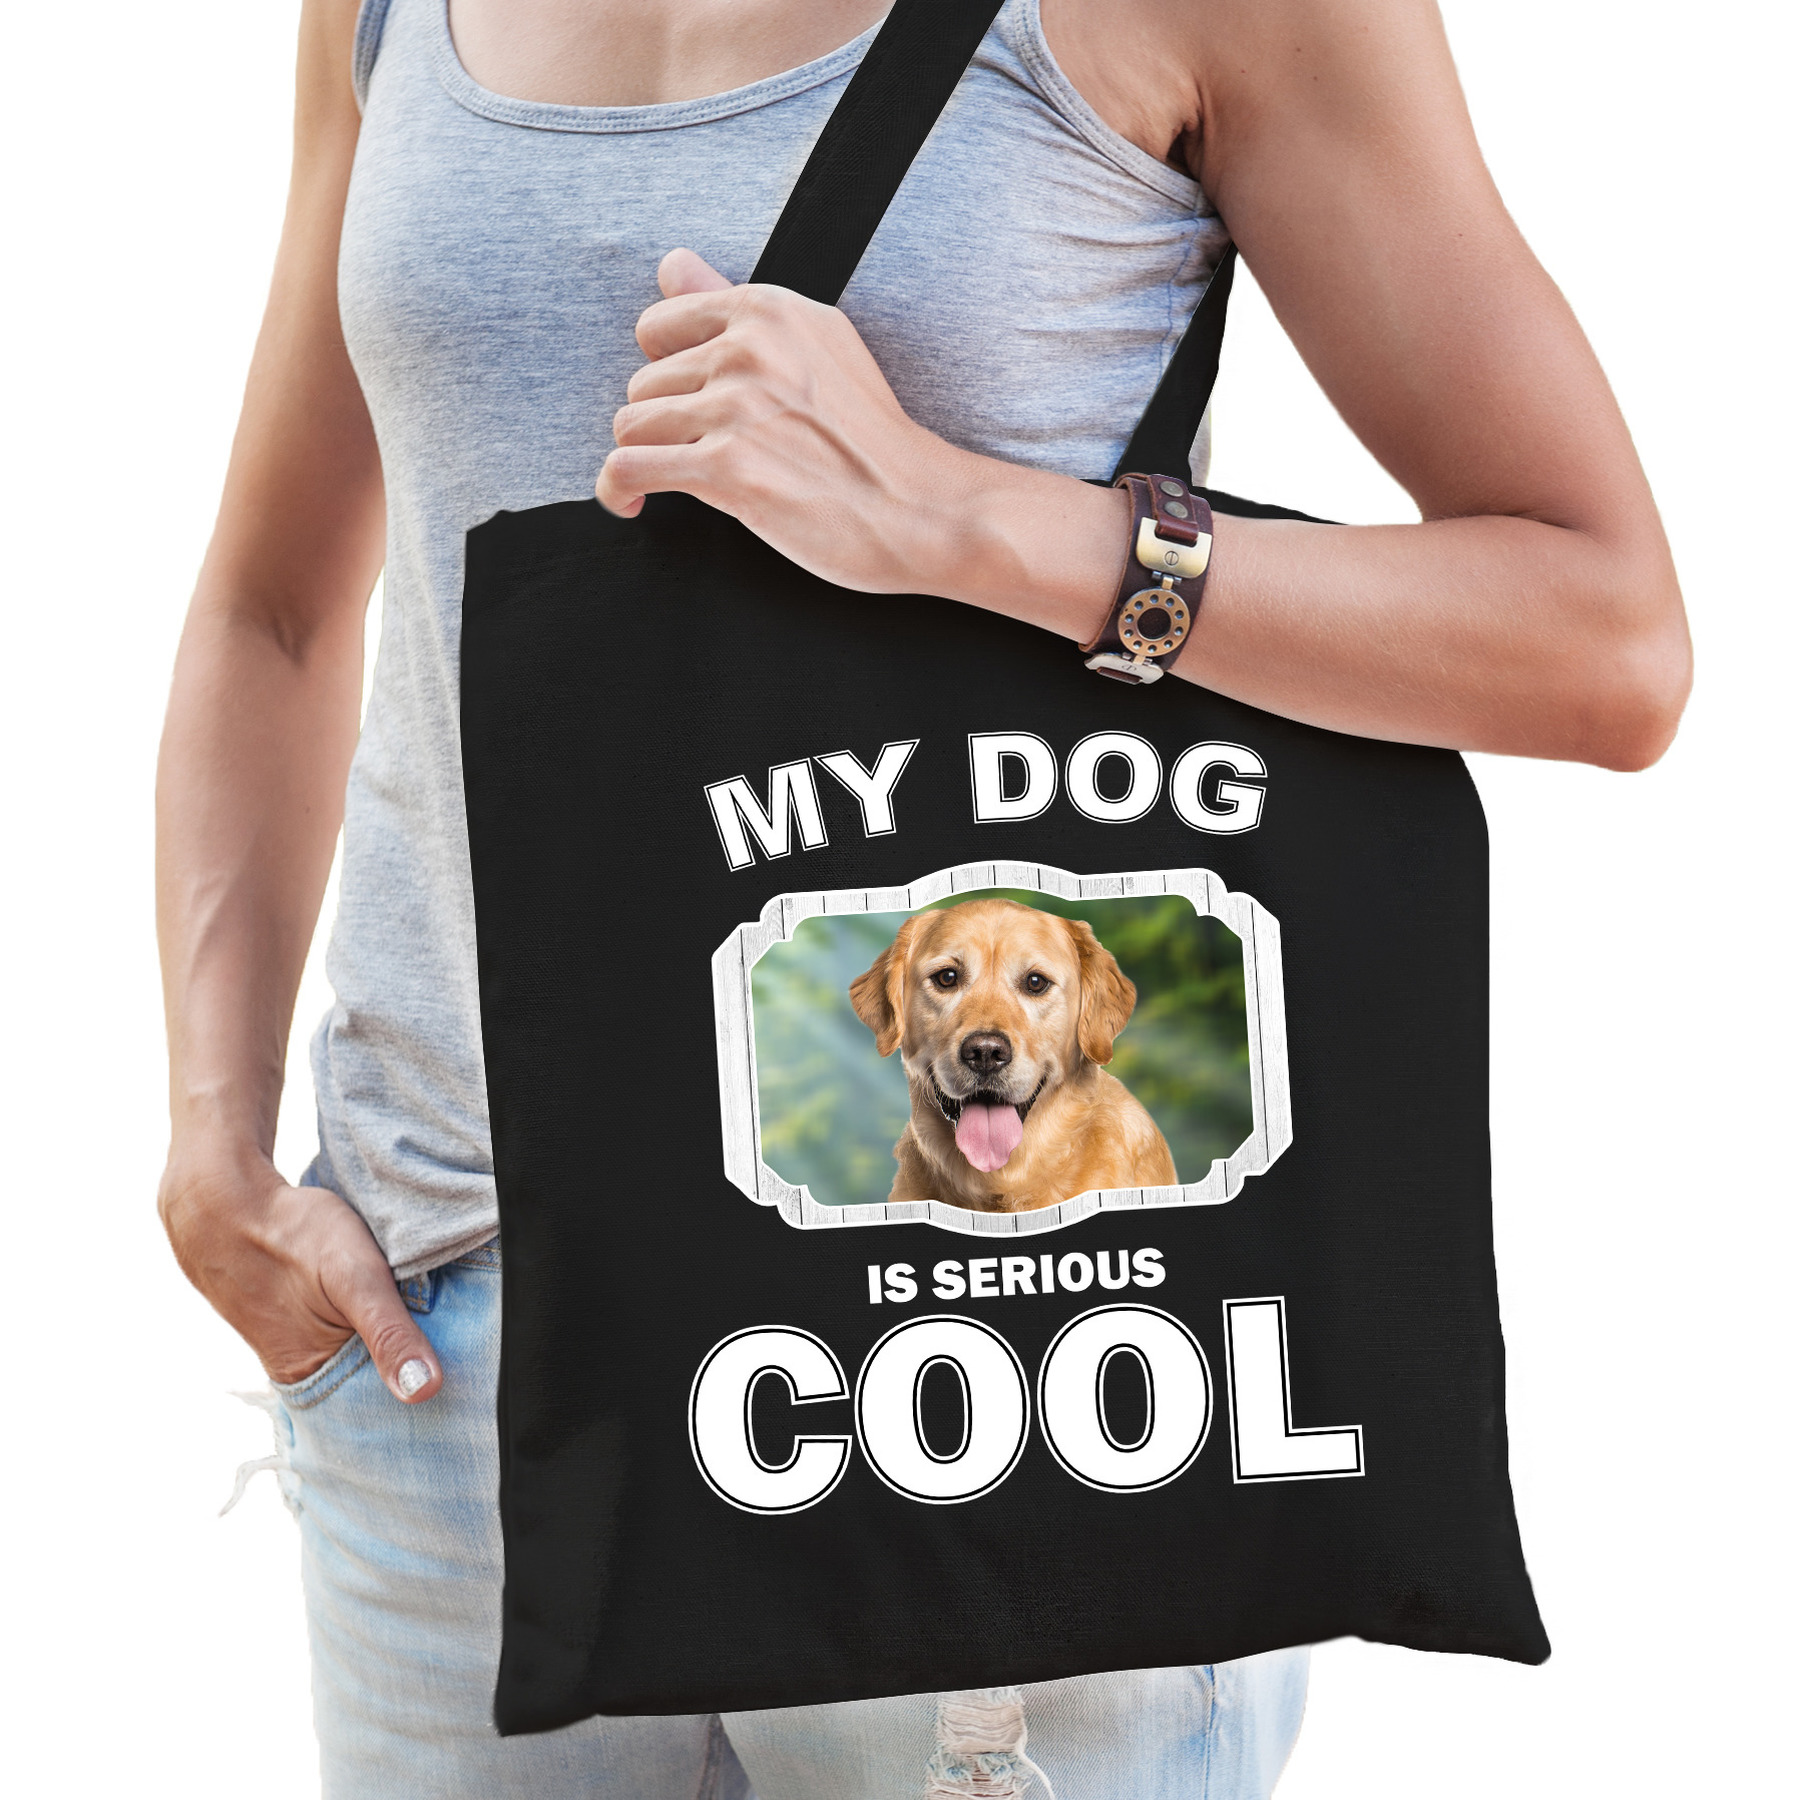 Katoenen tasje my dog is serious cool zwart - Golden Retriever honden cadeau tas